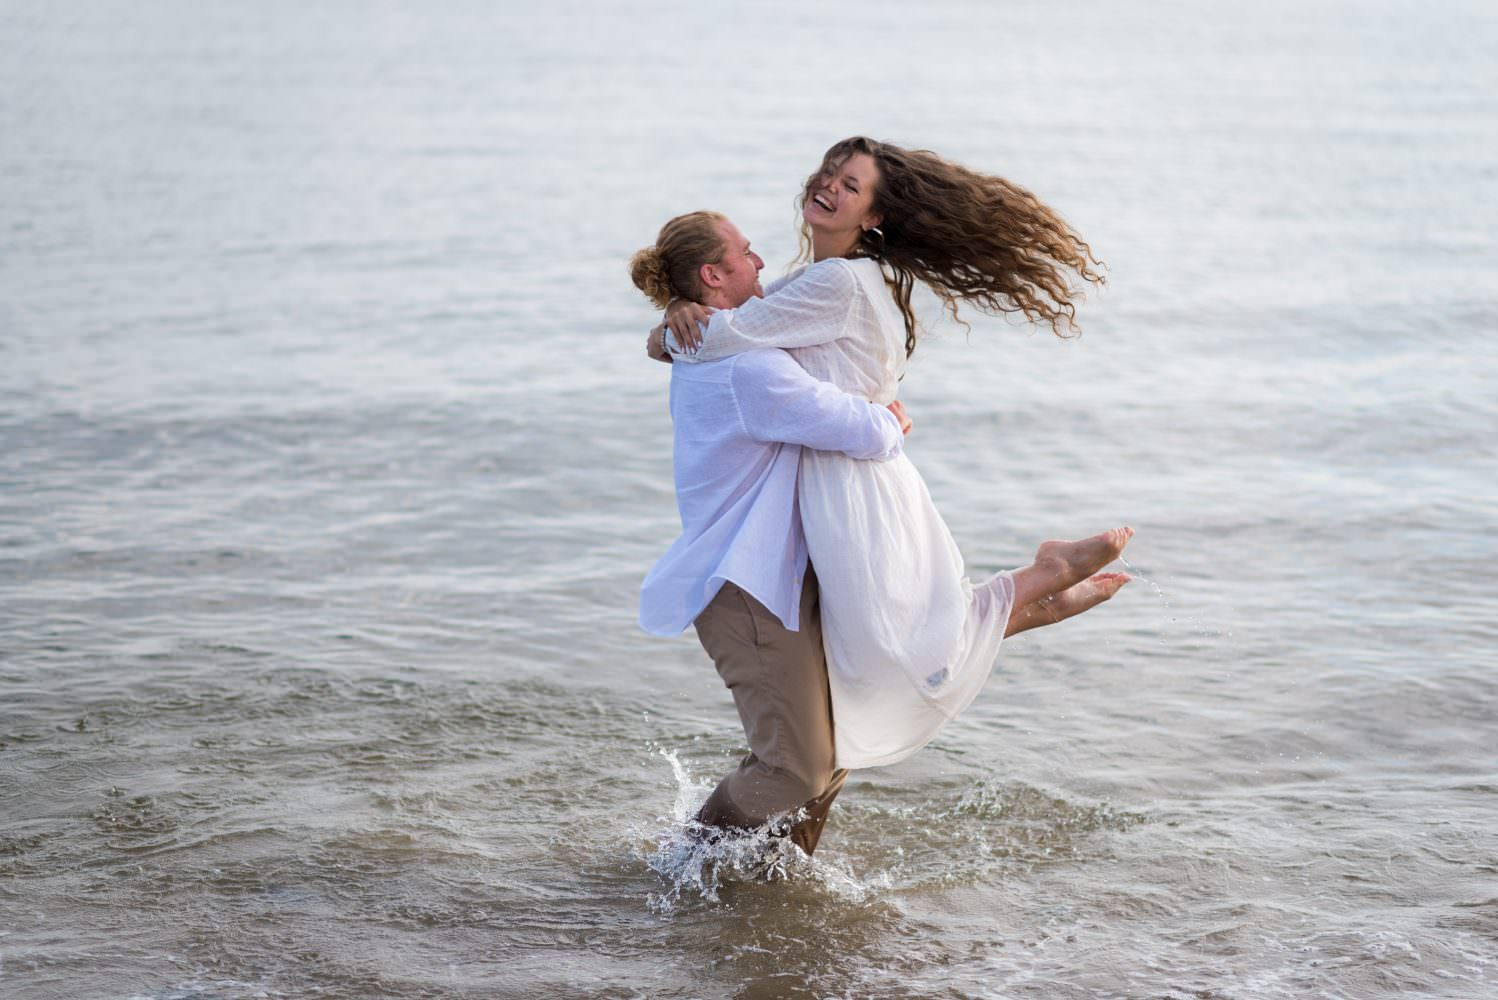 A couple spinning in water